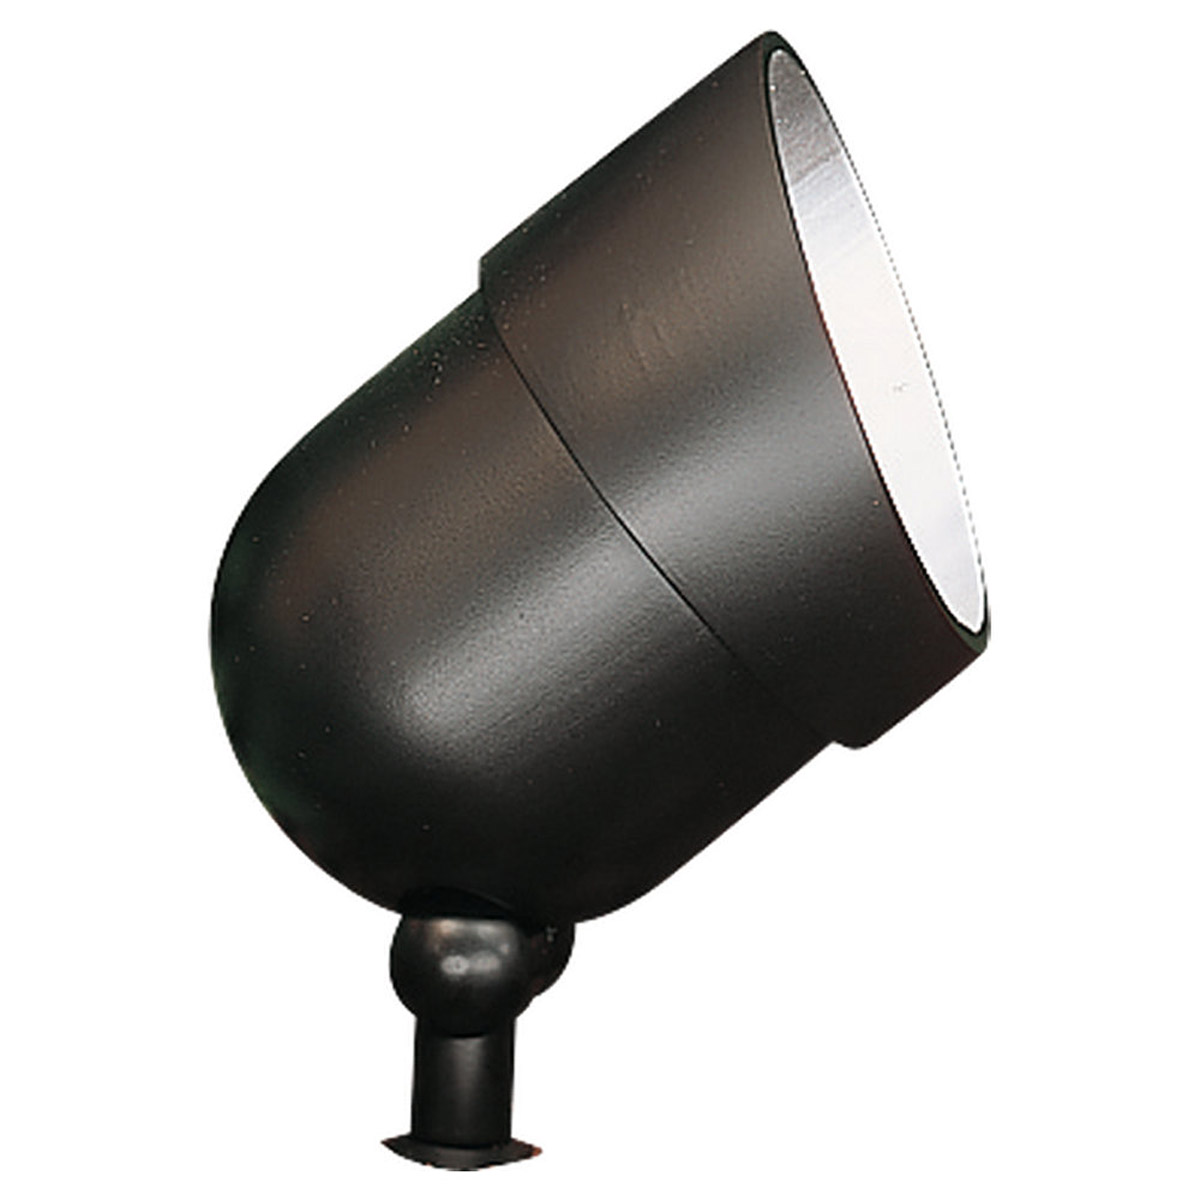 Sea Gull Lighting Landscape Lighting Landscape Lighting System Spot Light 9326-12 photo